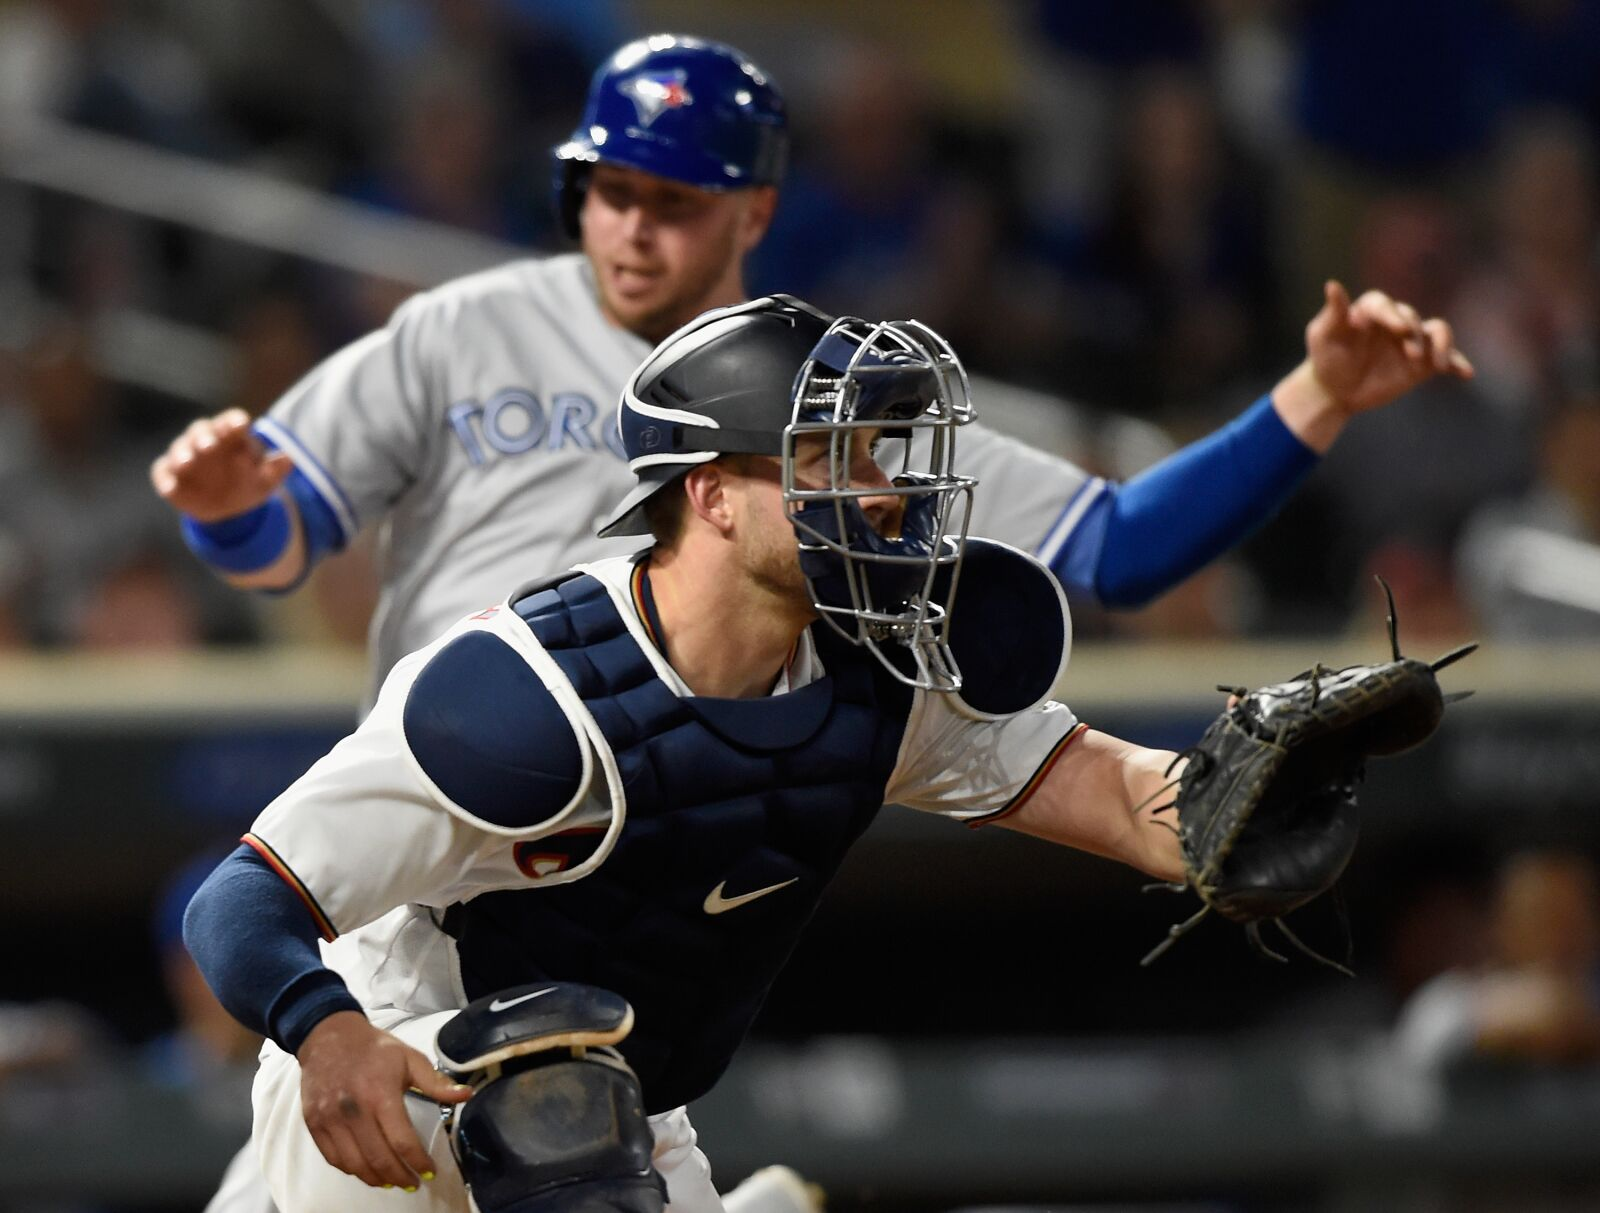 Minnesota Twins: Don't expect any big catching moves after losing